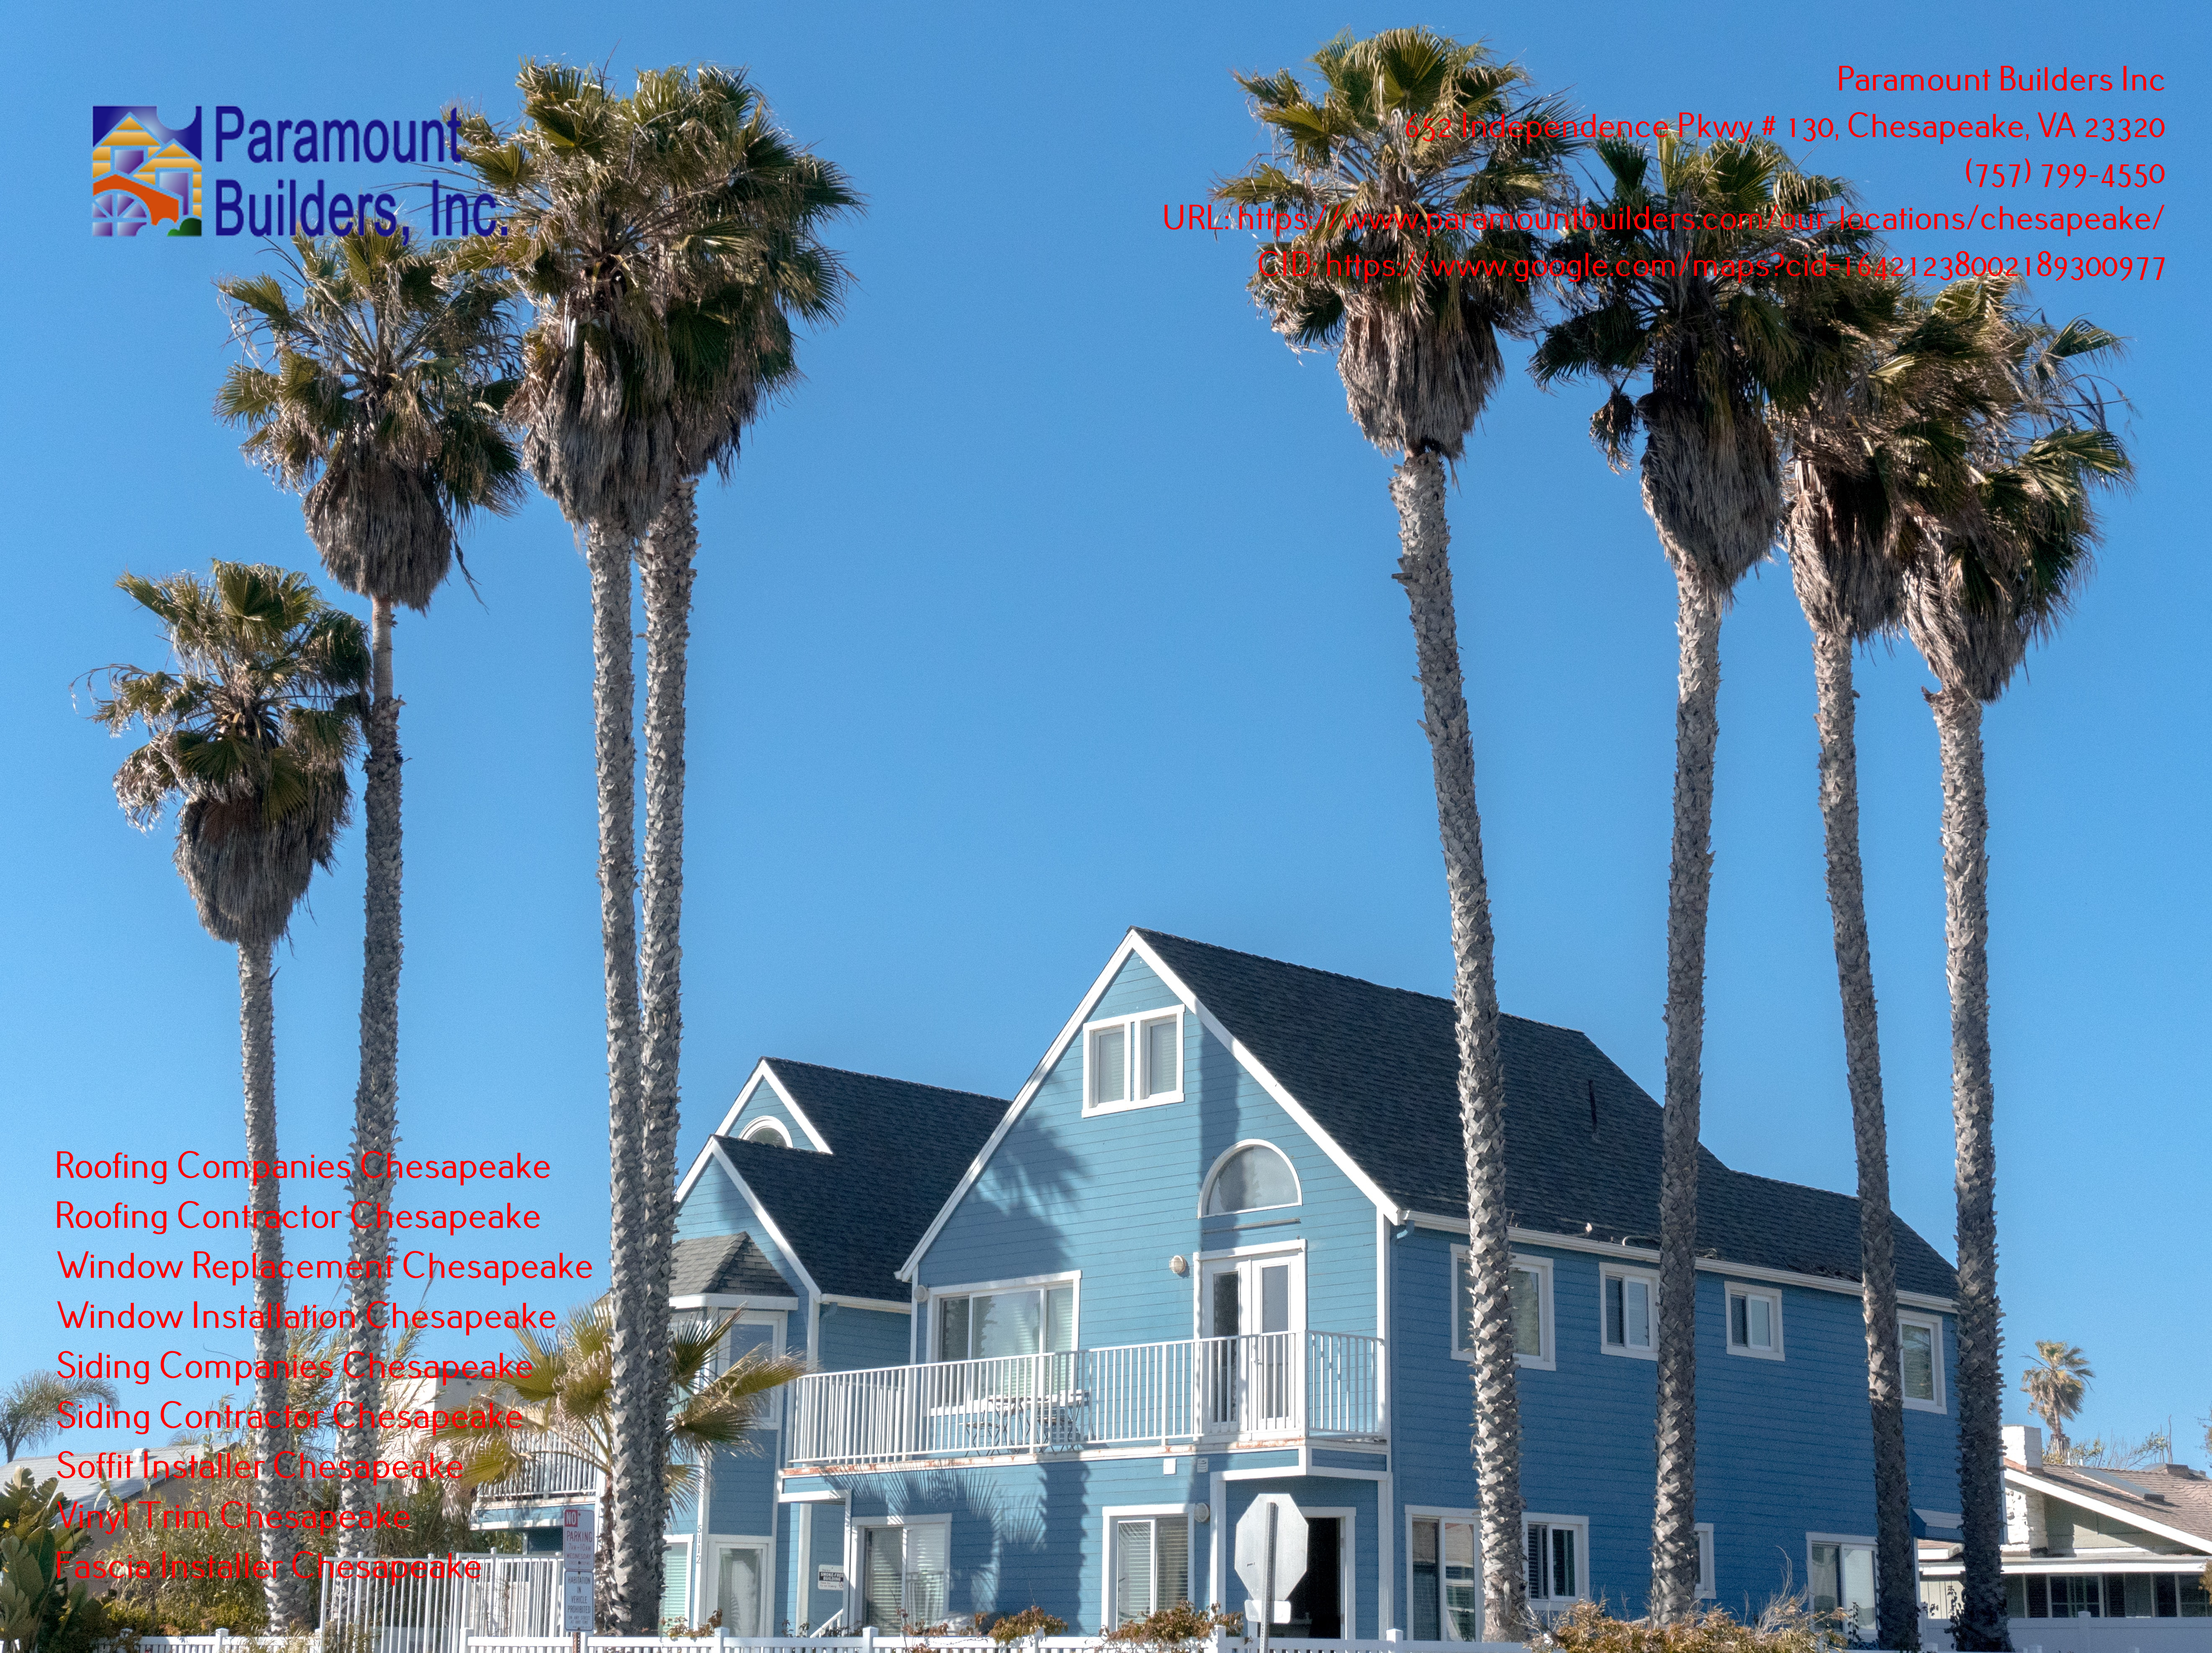 Paramount Builders Inc Provides Tips on Hiring the Best Chesapeake Roofing Companies